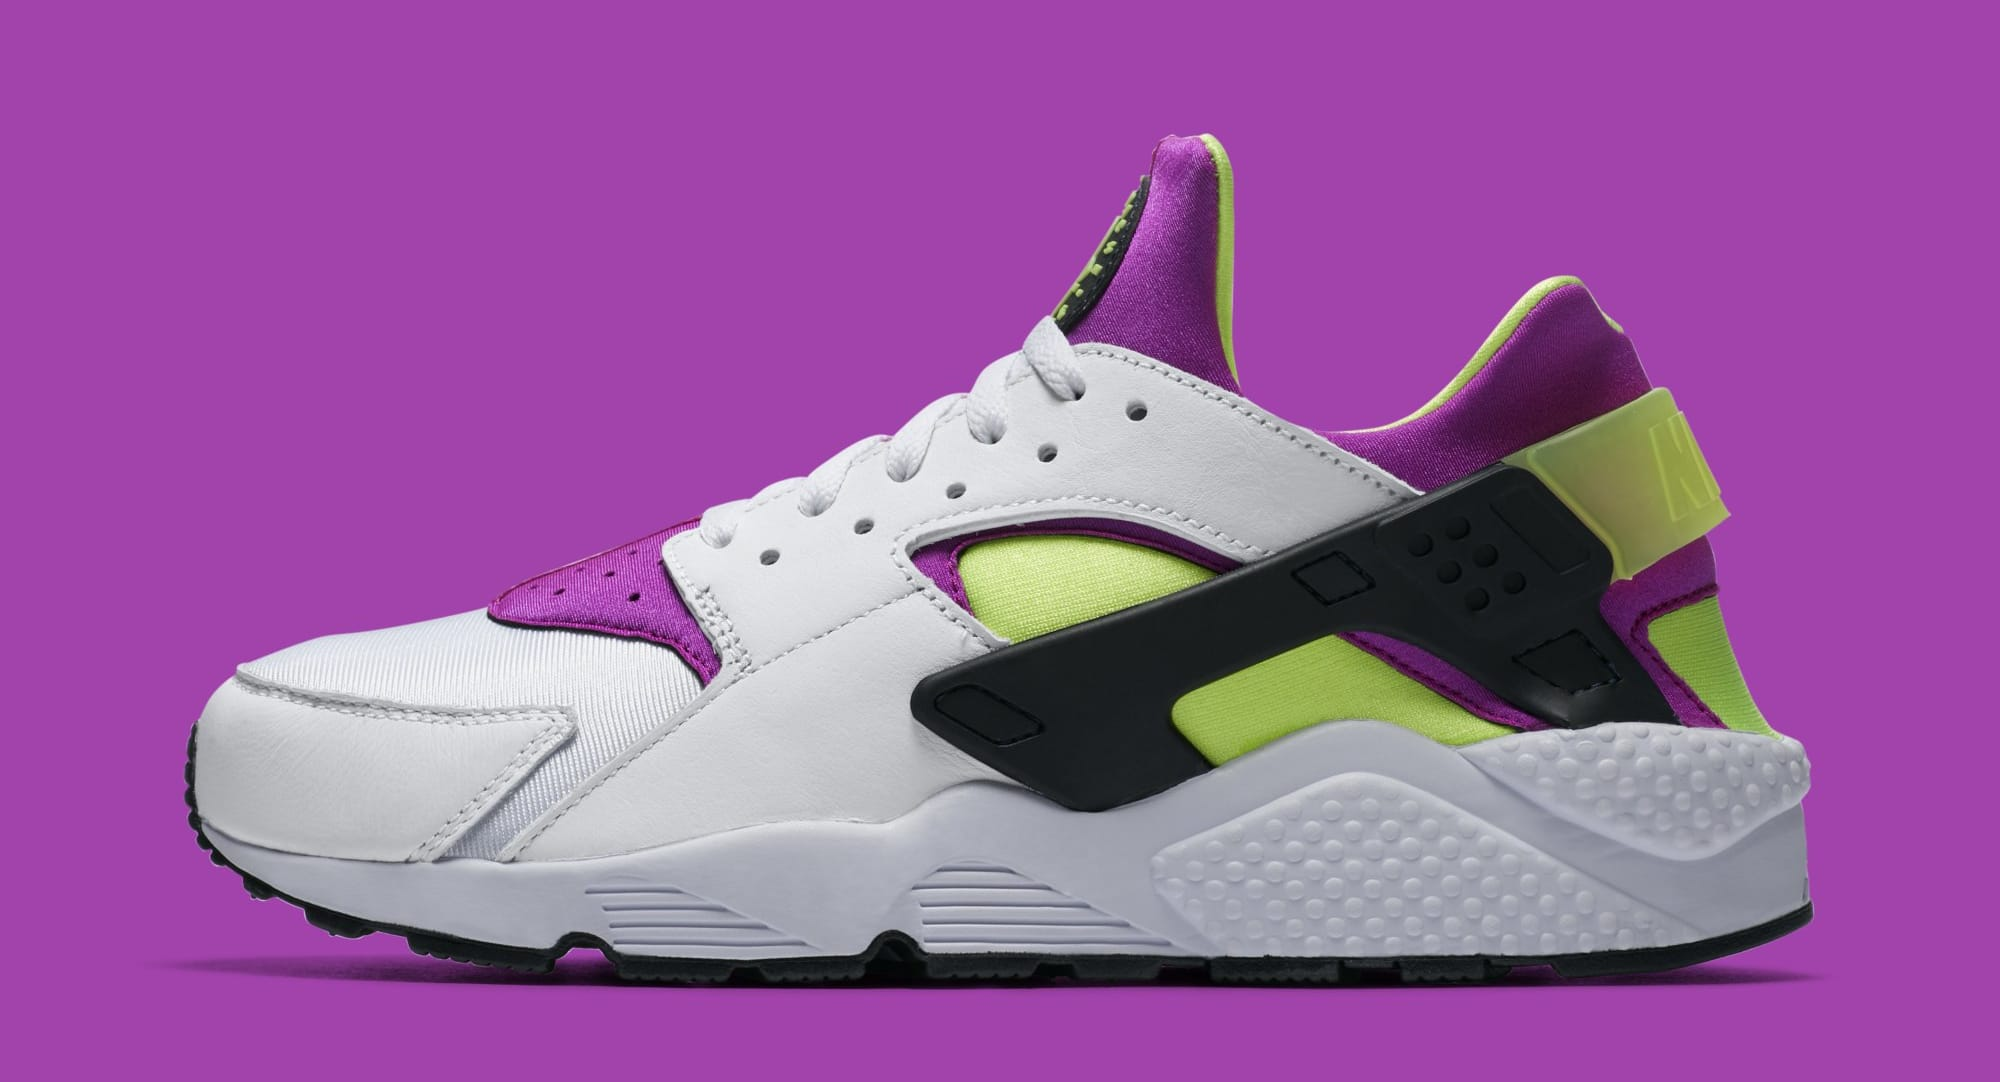 c3844f34171e ... neon yellow and magenta theme. 25176 c5595  top quality nike air  huarache ah8049 101 lateral cff2f 4386c